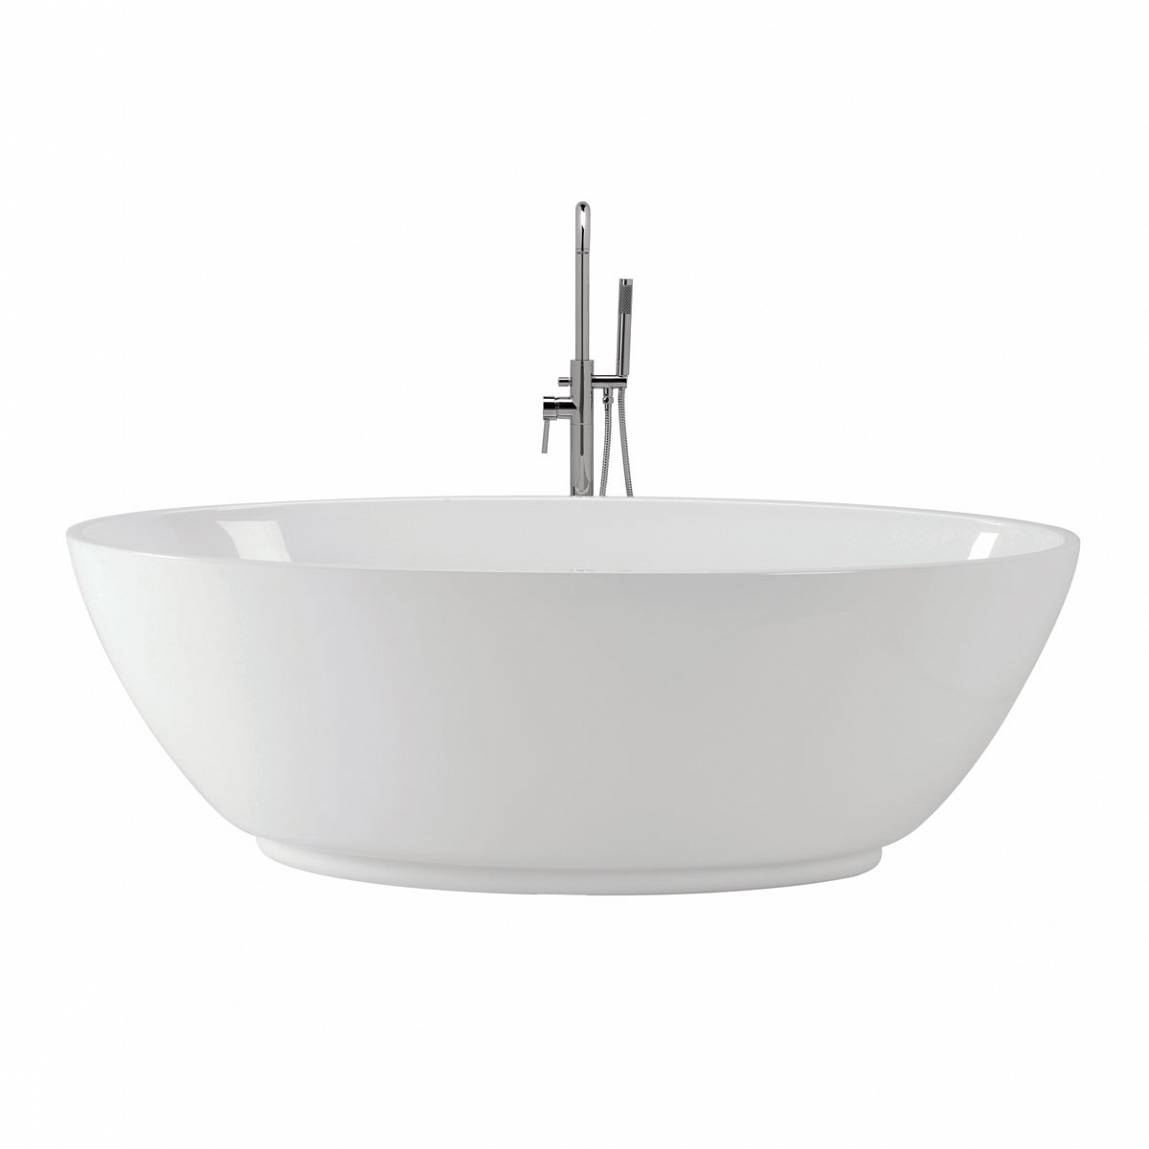 Image of Harrison Freestanding Bath Large